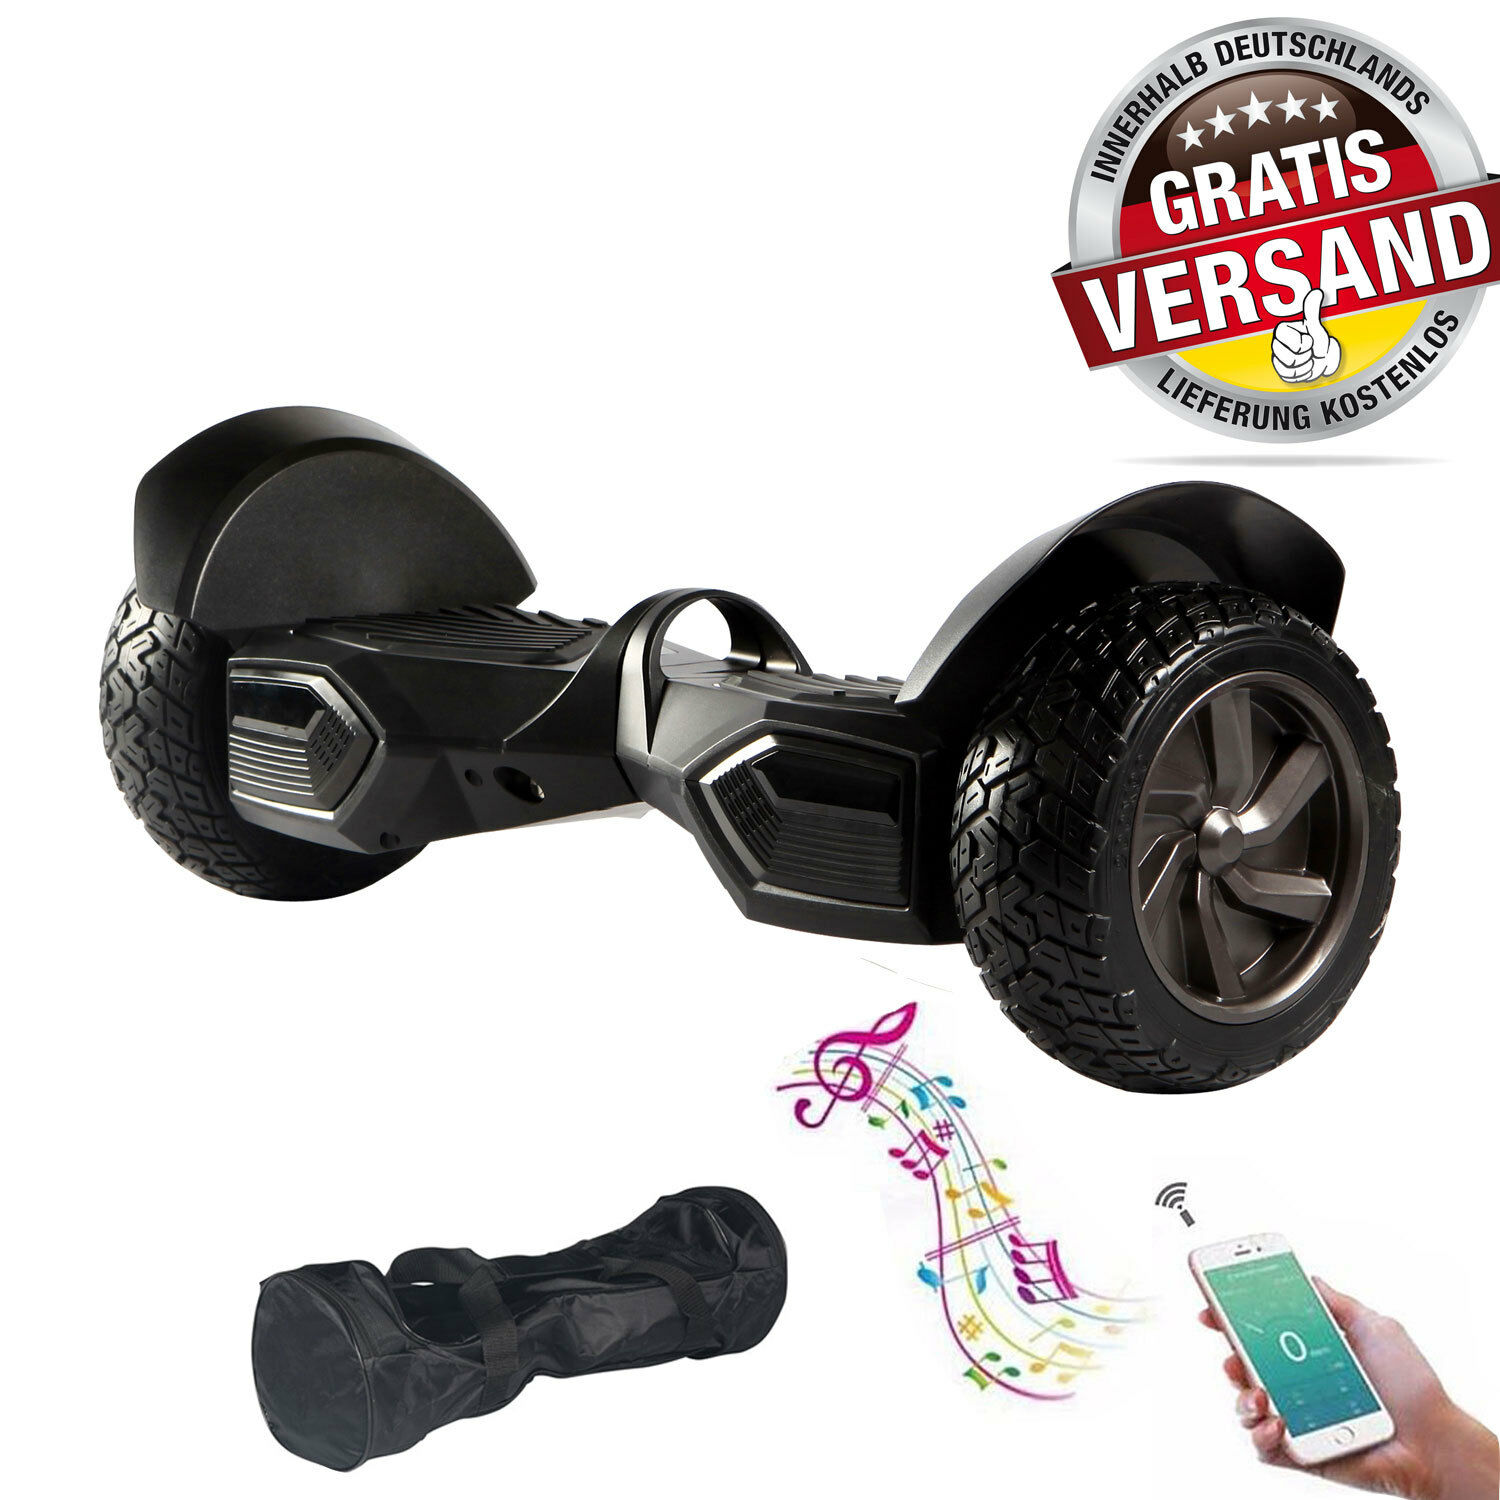 hoverboard 8 5 zoll mit griff bluetooth tasche samung akku self balance scooter picclick de. Black Bedroom Furniture Sets. Home Design Ideas